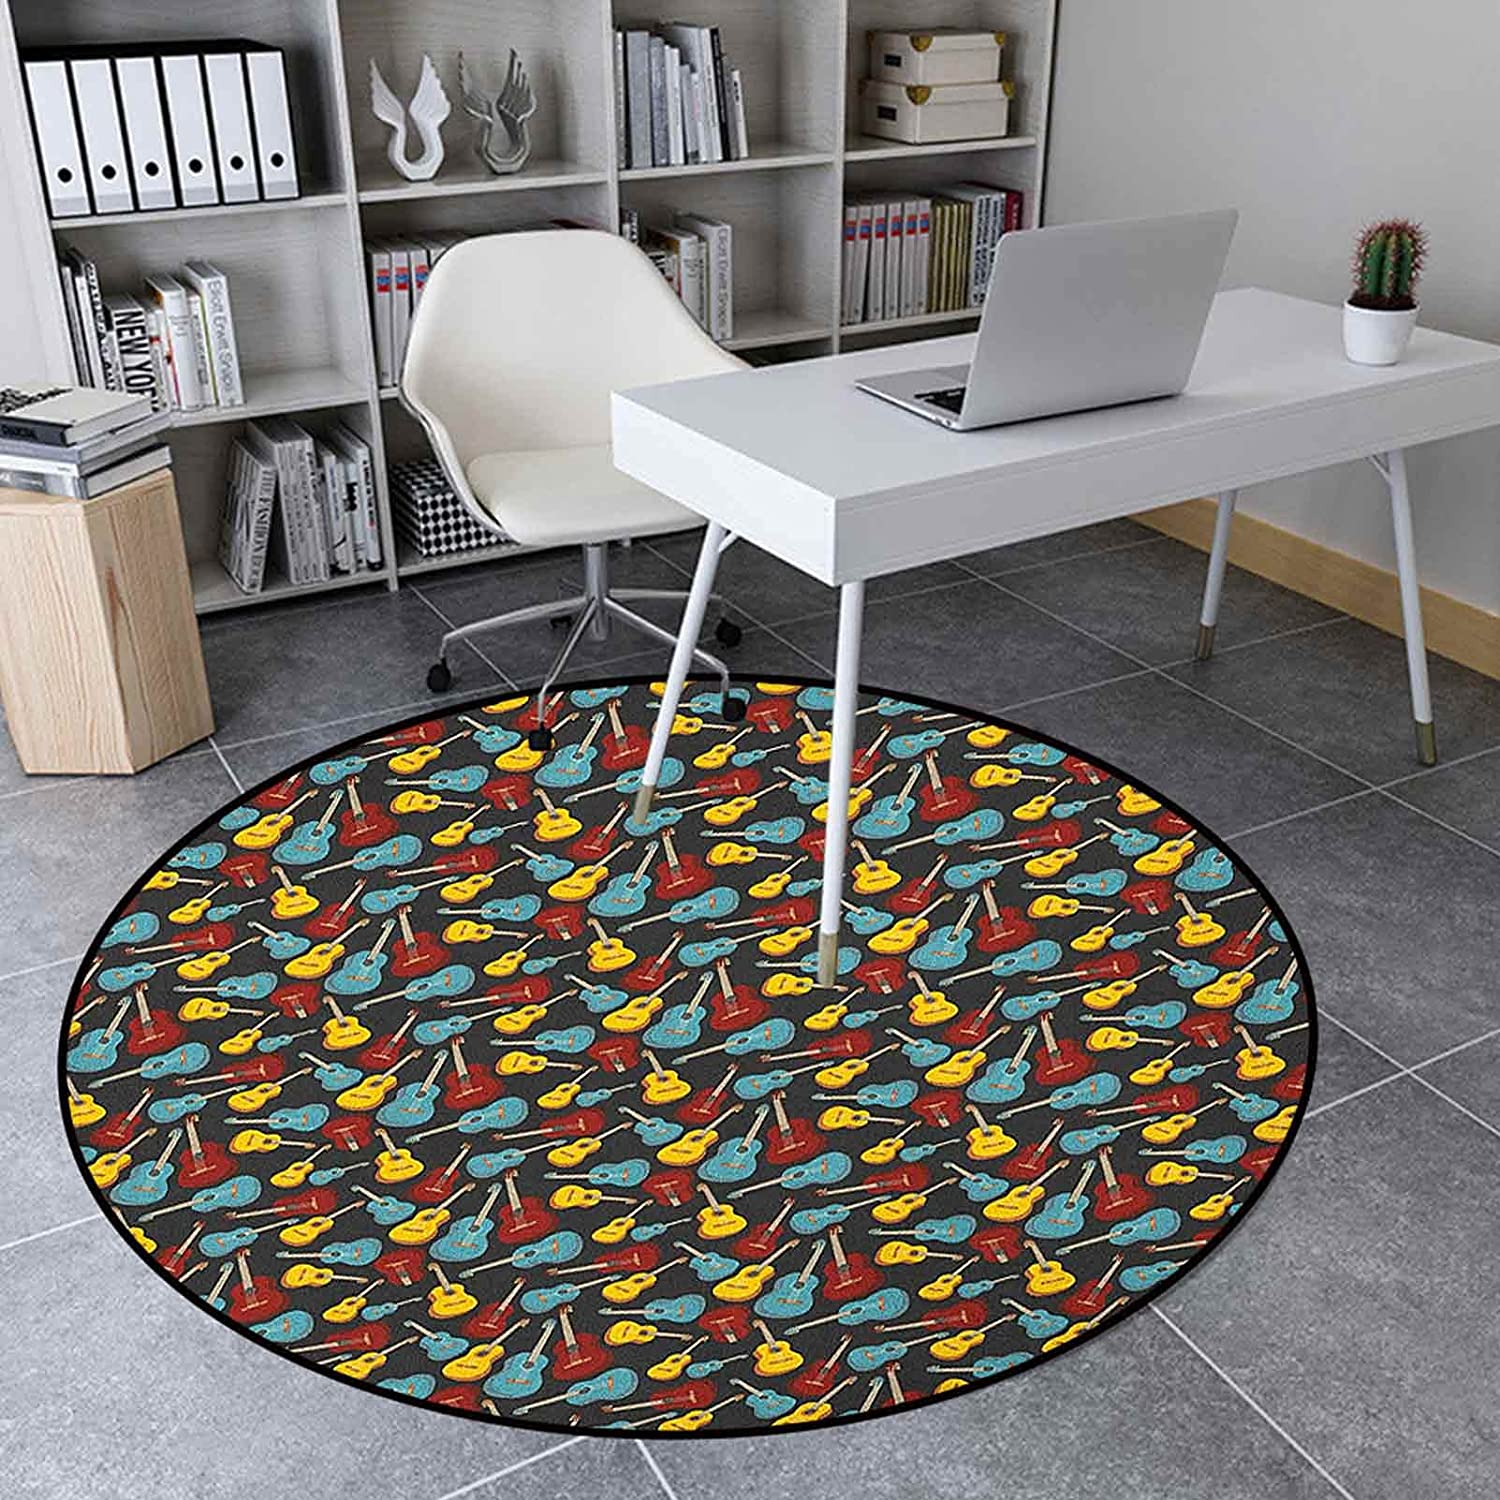 Guitar Round Complete Free Shipping Rug Store for Bedroom 5.6 Home Inches Ft Soft Floor Mat